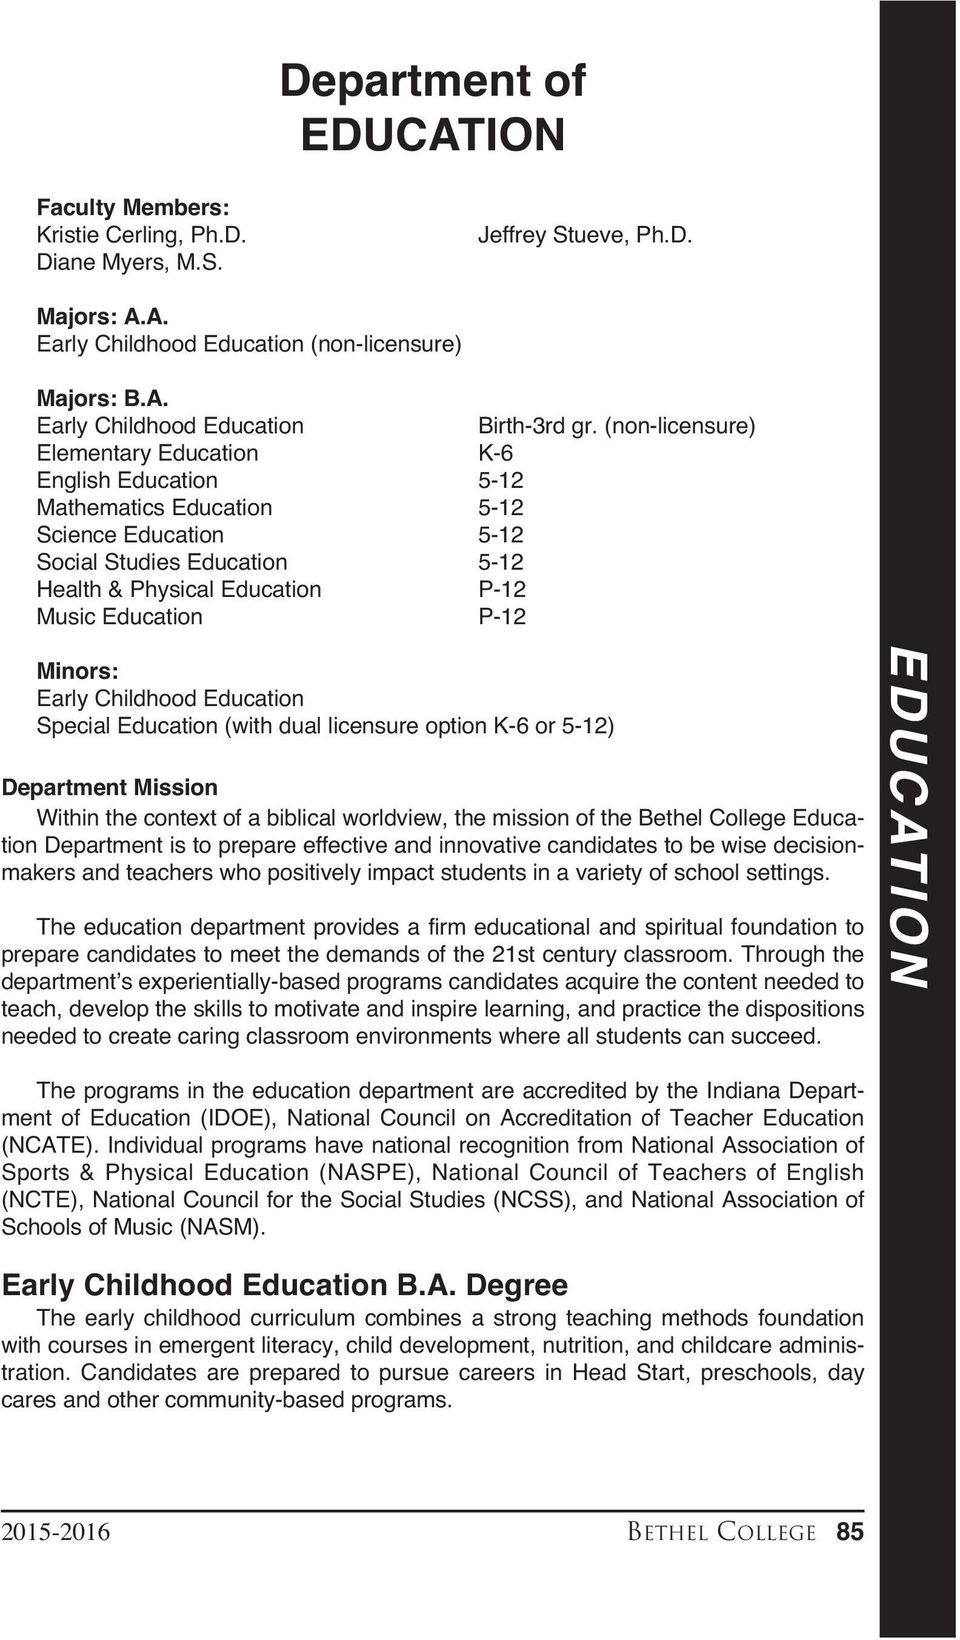 Minors: Early Childhood Education Special Education (with dual licensure option K-6 or 5-12) Department Mission Within the context of a biblical worldview, the mission of the Bethel College Education